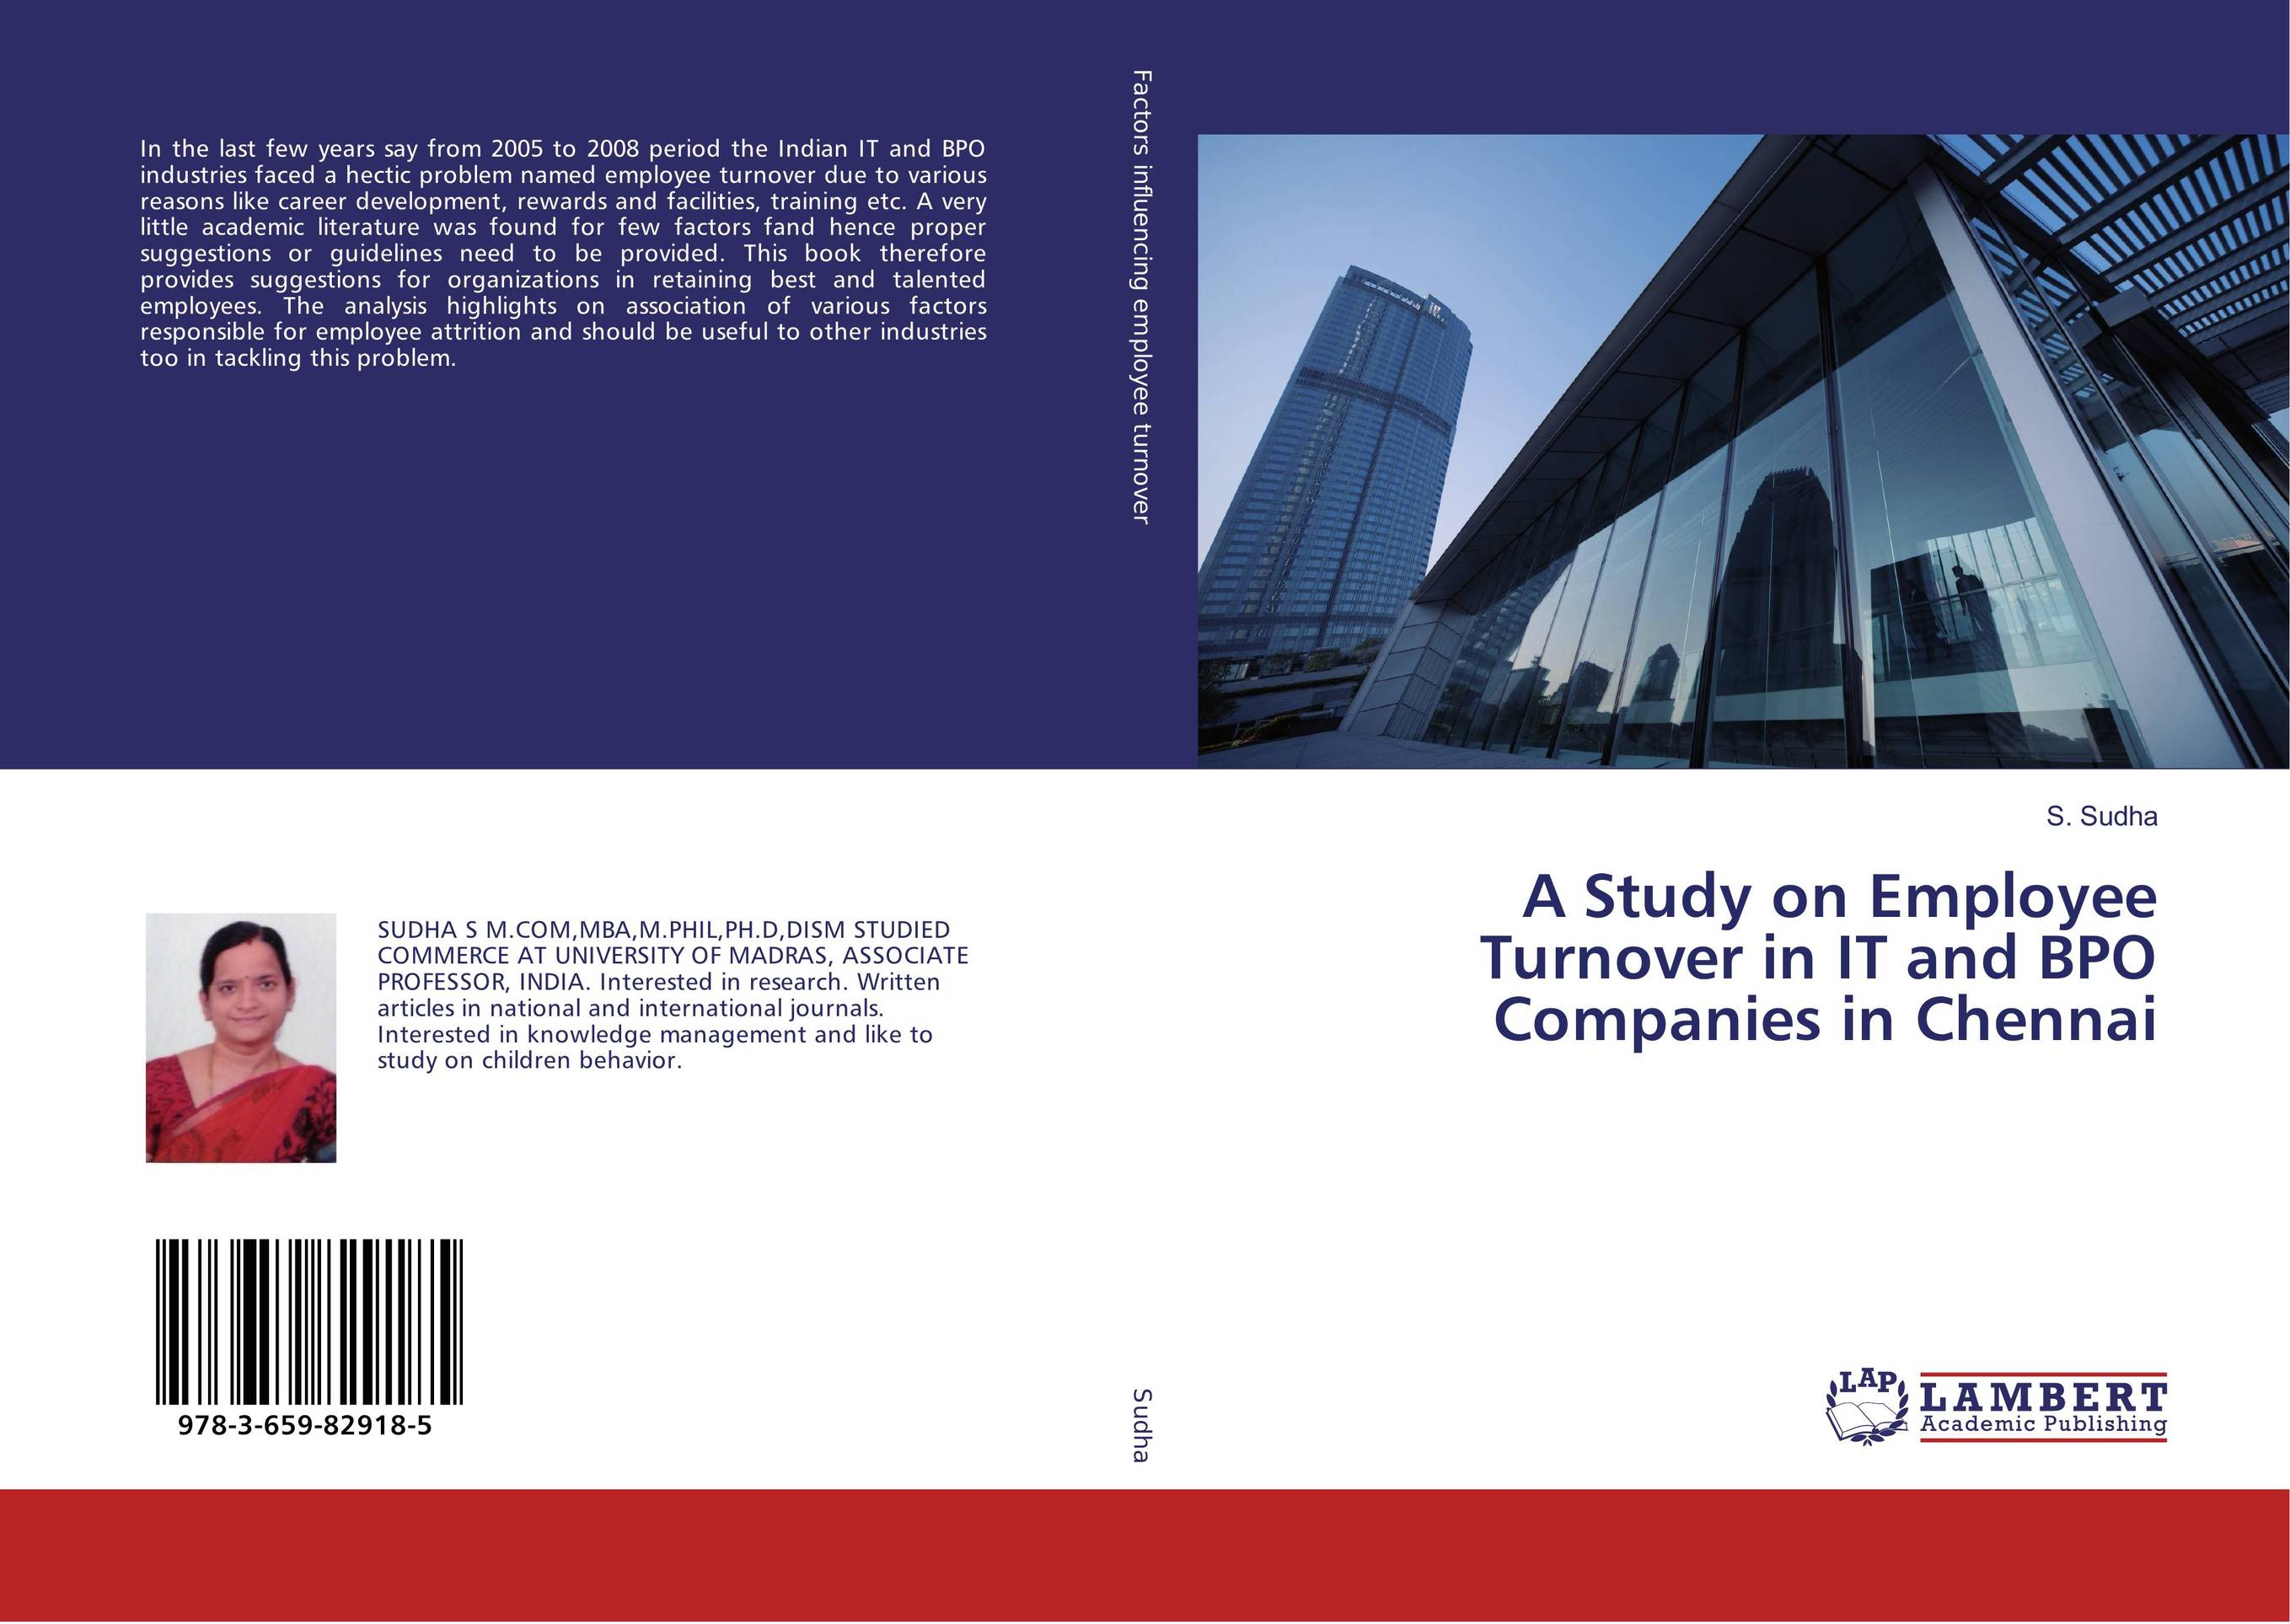 A Study on Employee Turnover in IT and BPO Companies in Chennai impact of training and development on employee turnover